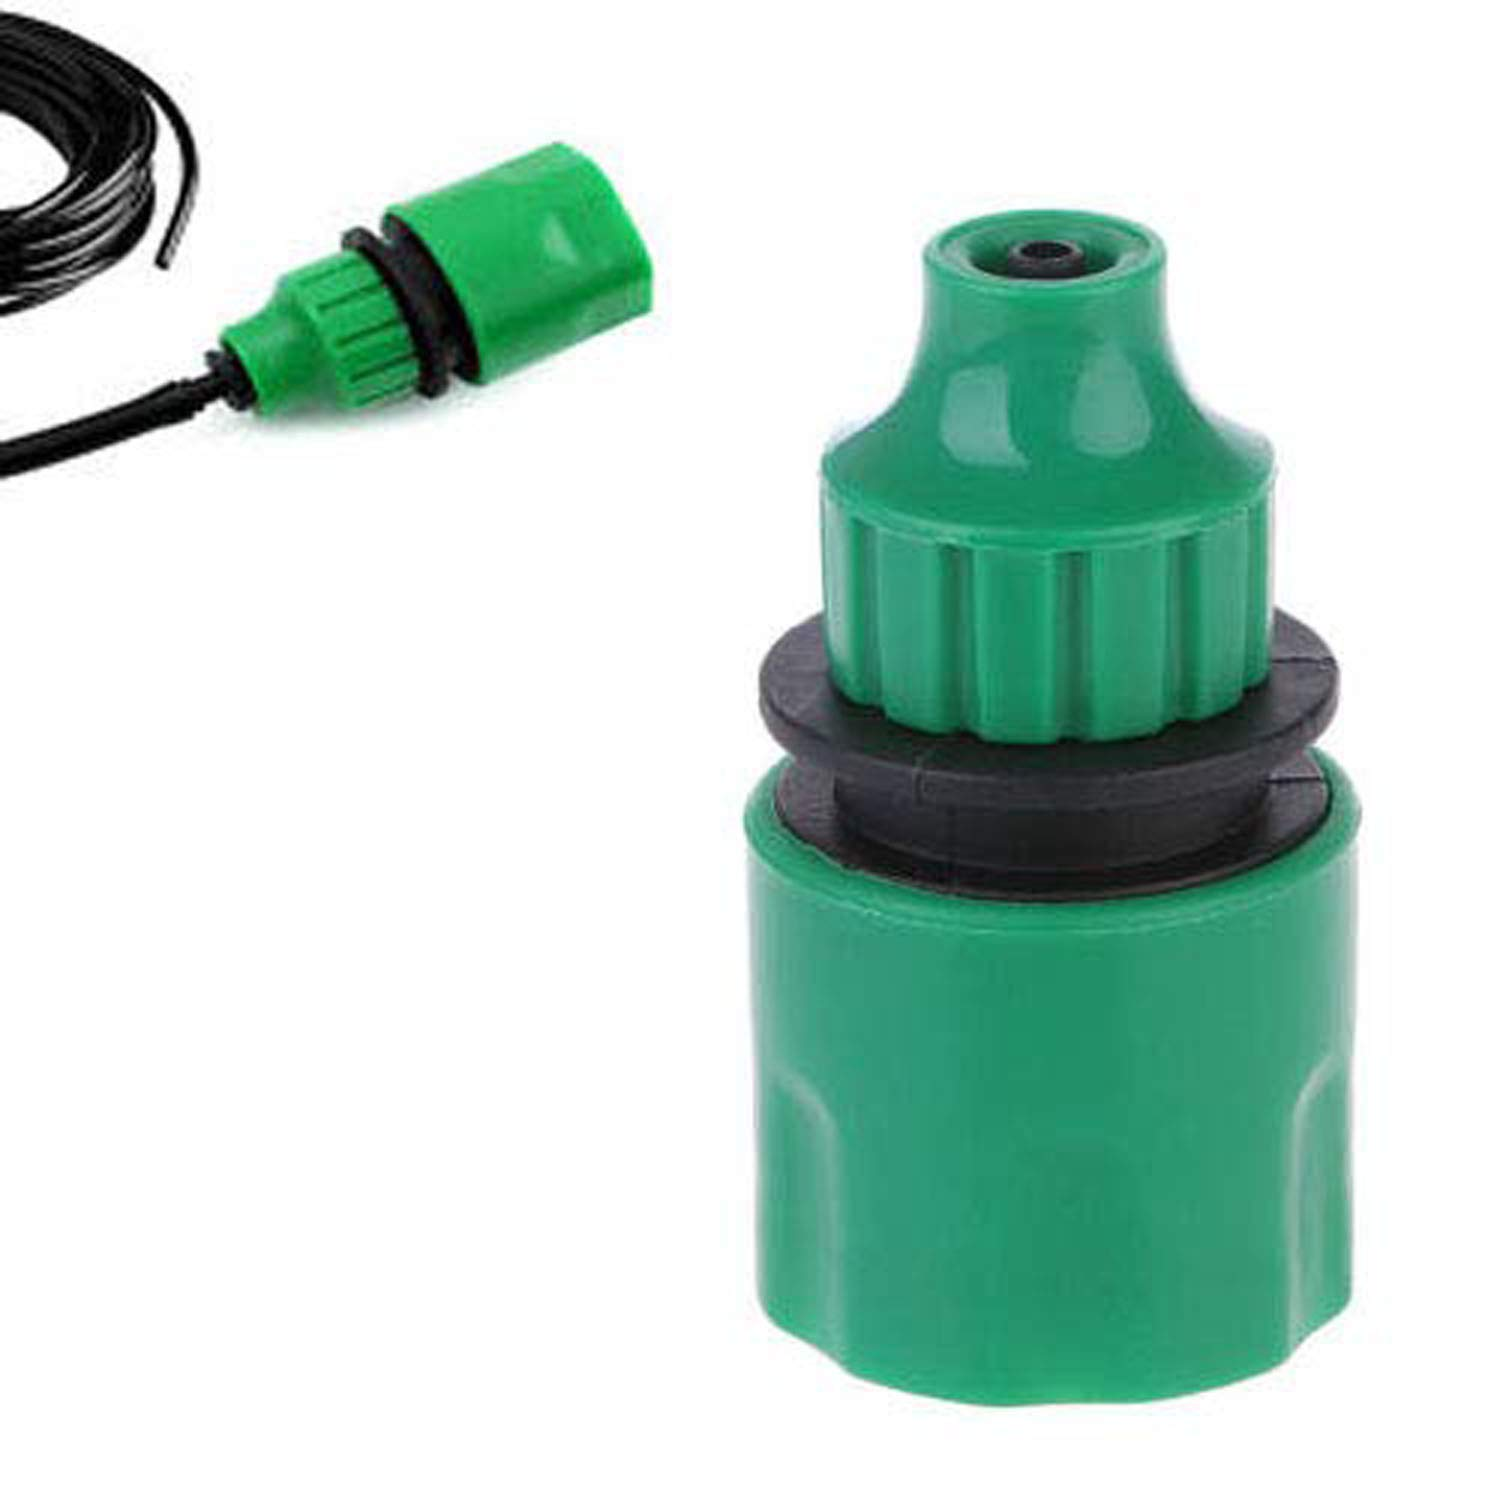 Diy Crafts Garden Hose Pipe One Way Adapter Tap Connector Fitting For Irrigation System Pipe Fitting Tap Adaptor Connector 4 7 8 11 Pipe Water Hose Garden Pack Of 1 Pc Design No